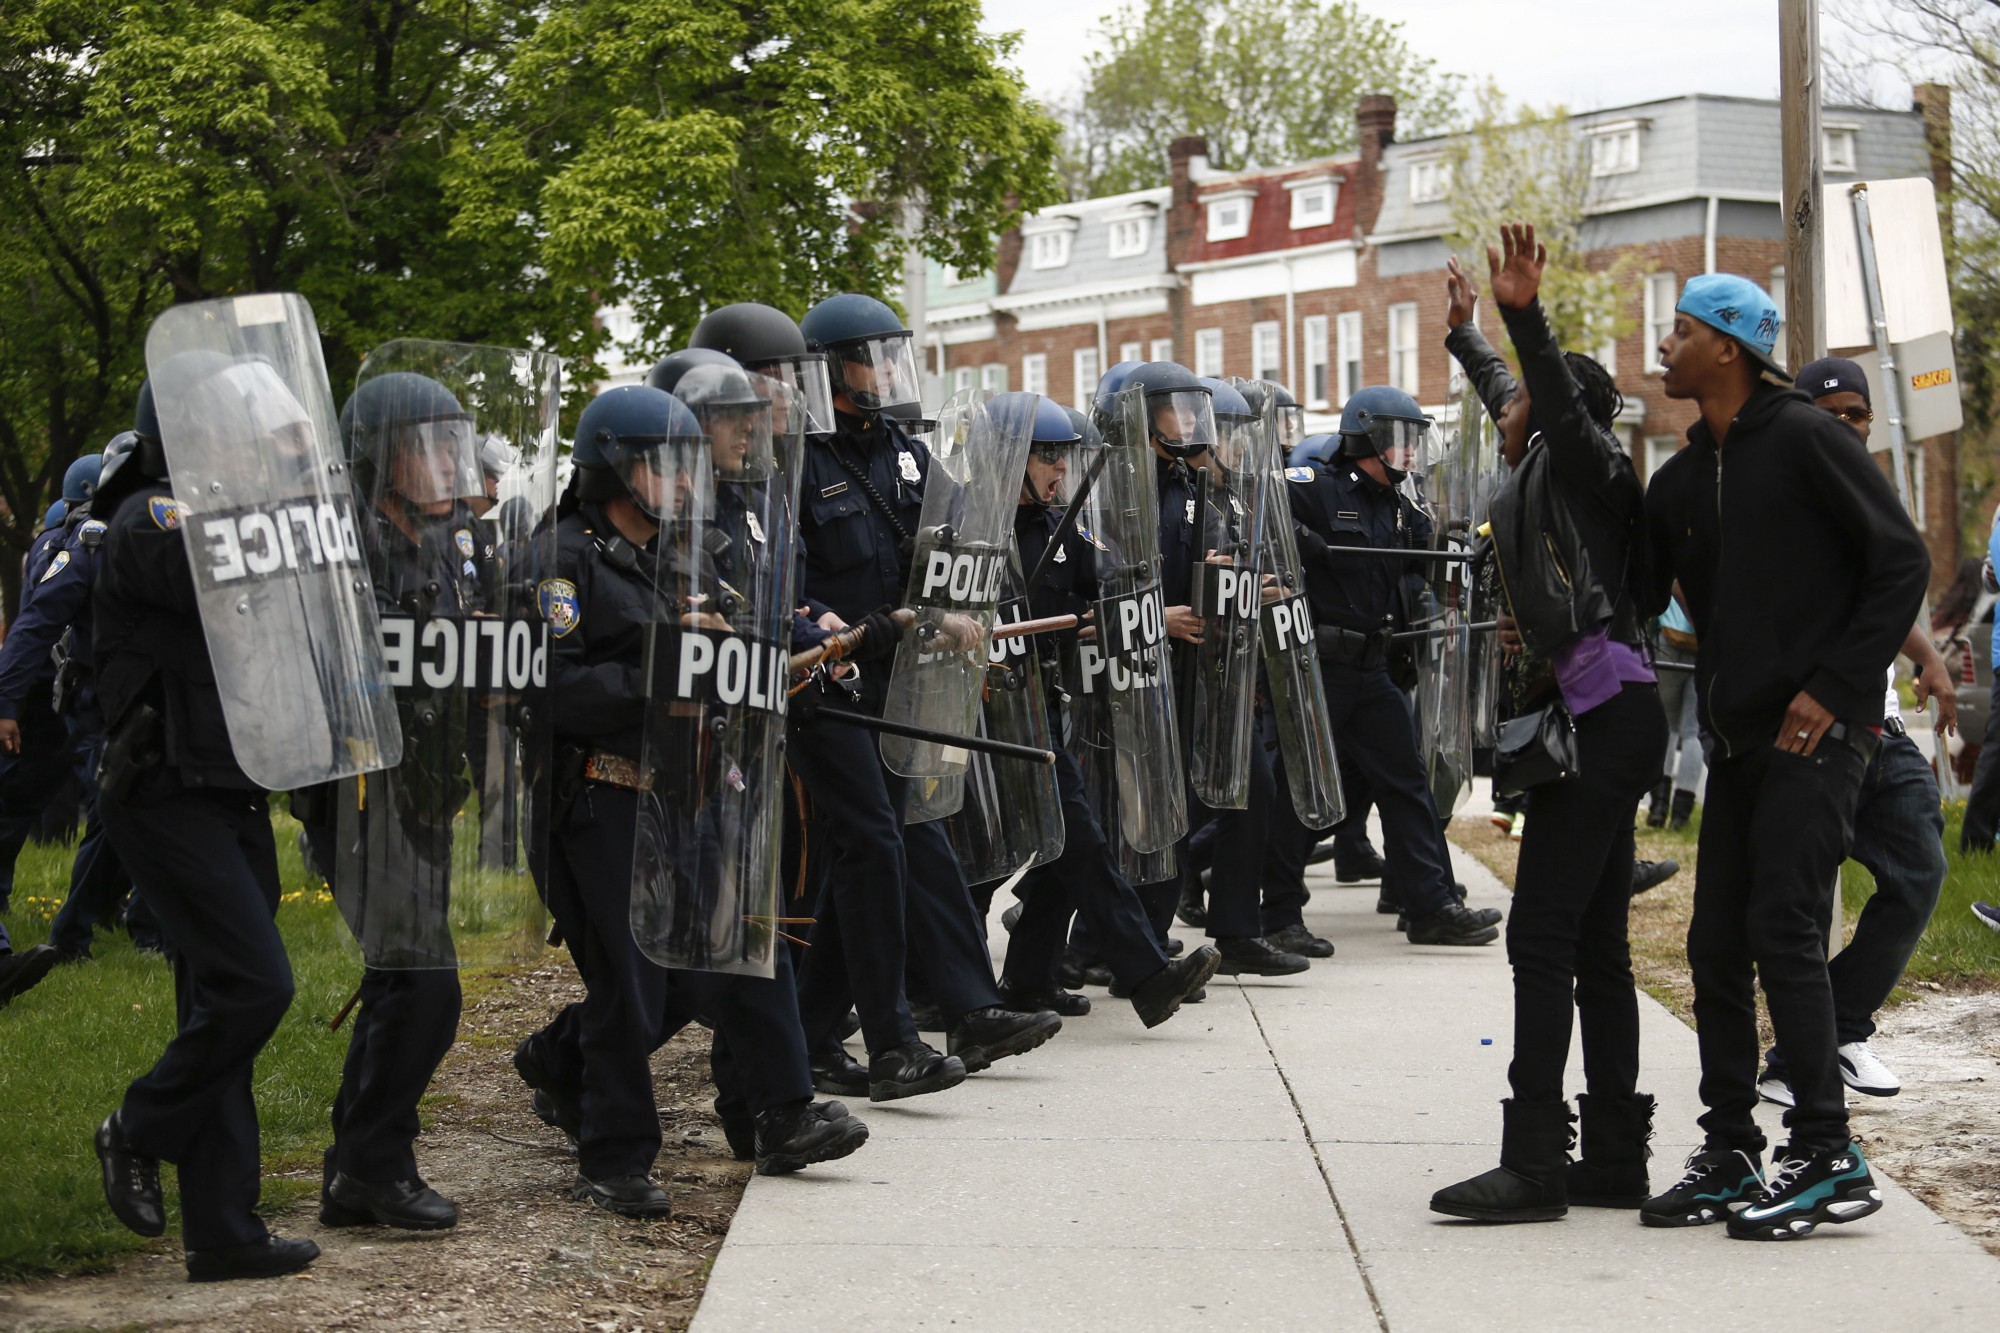 Baltimore police officers in riot gear push protestors back along - A Baltimore Police Officers In Riot Gear Push Protestors Back Along Reisterstown Road Near Mondawmin Mall April 27 In Baltimore Maryland